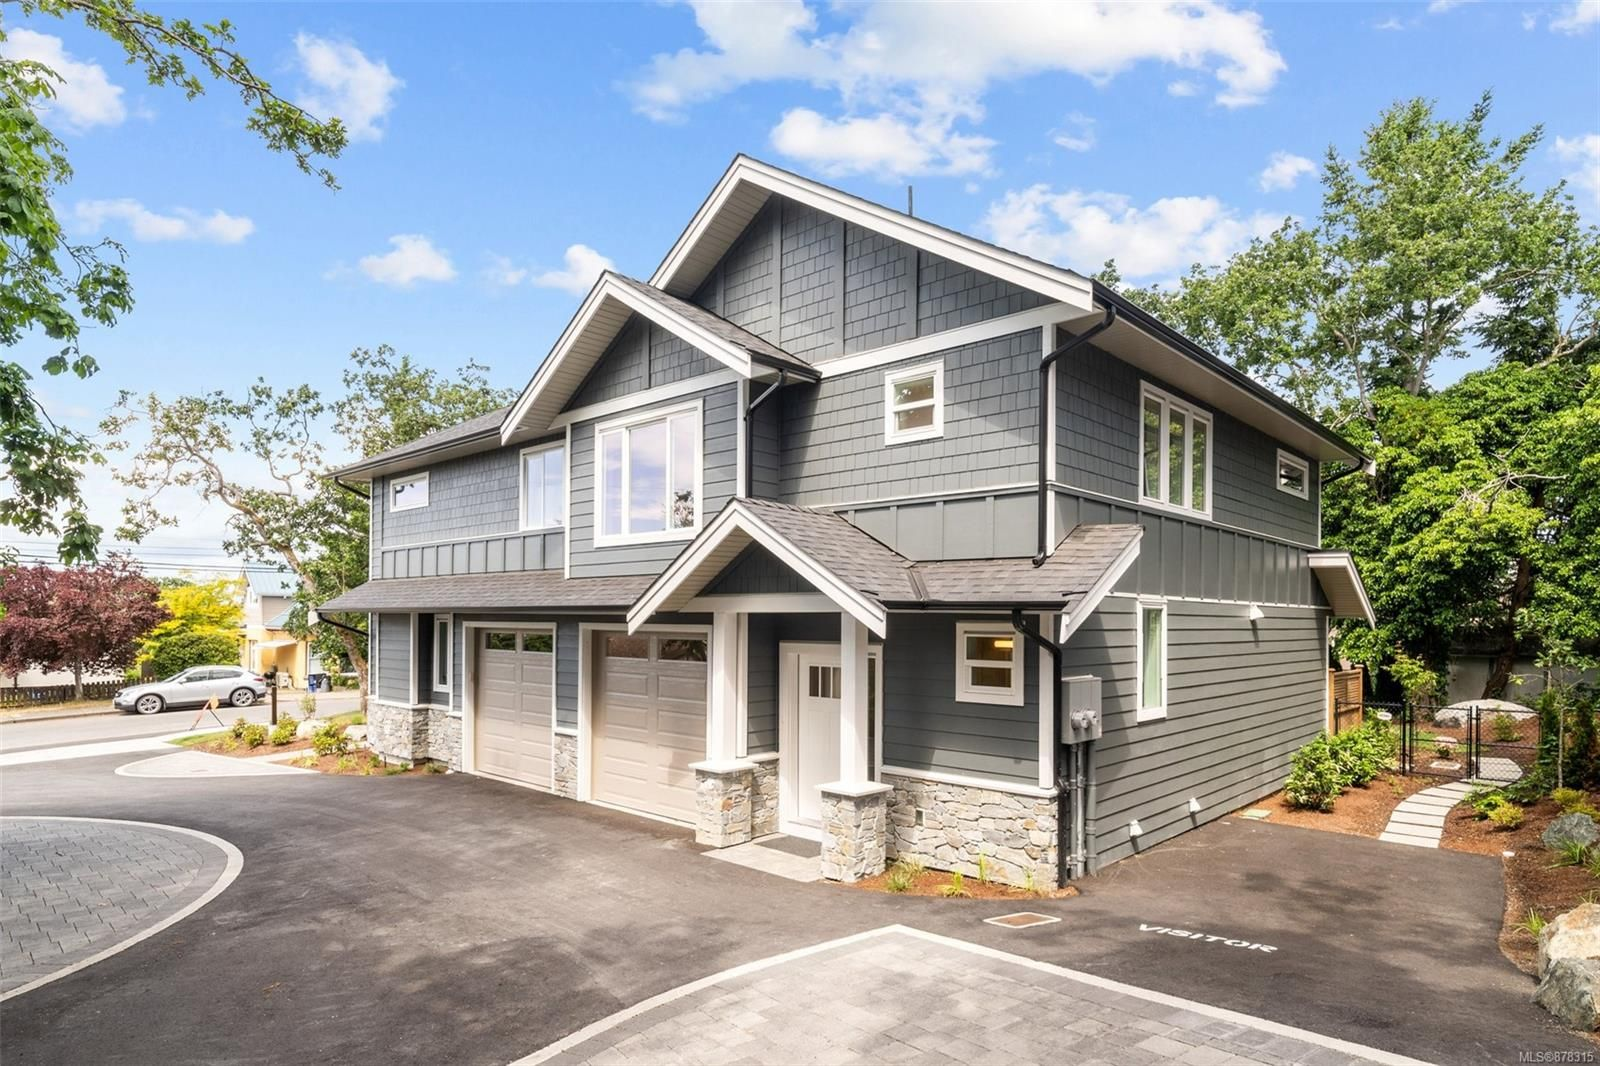 Main Photo: 2 3031 Jackson St in : Vi Hillside Row/Townhouse for sale (Victoria)  : MLS®# 878315